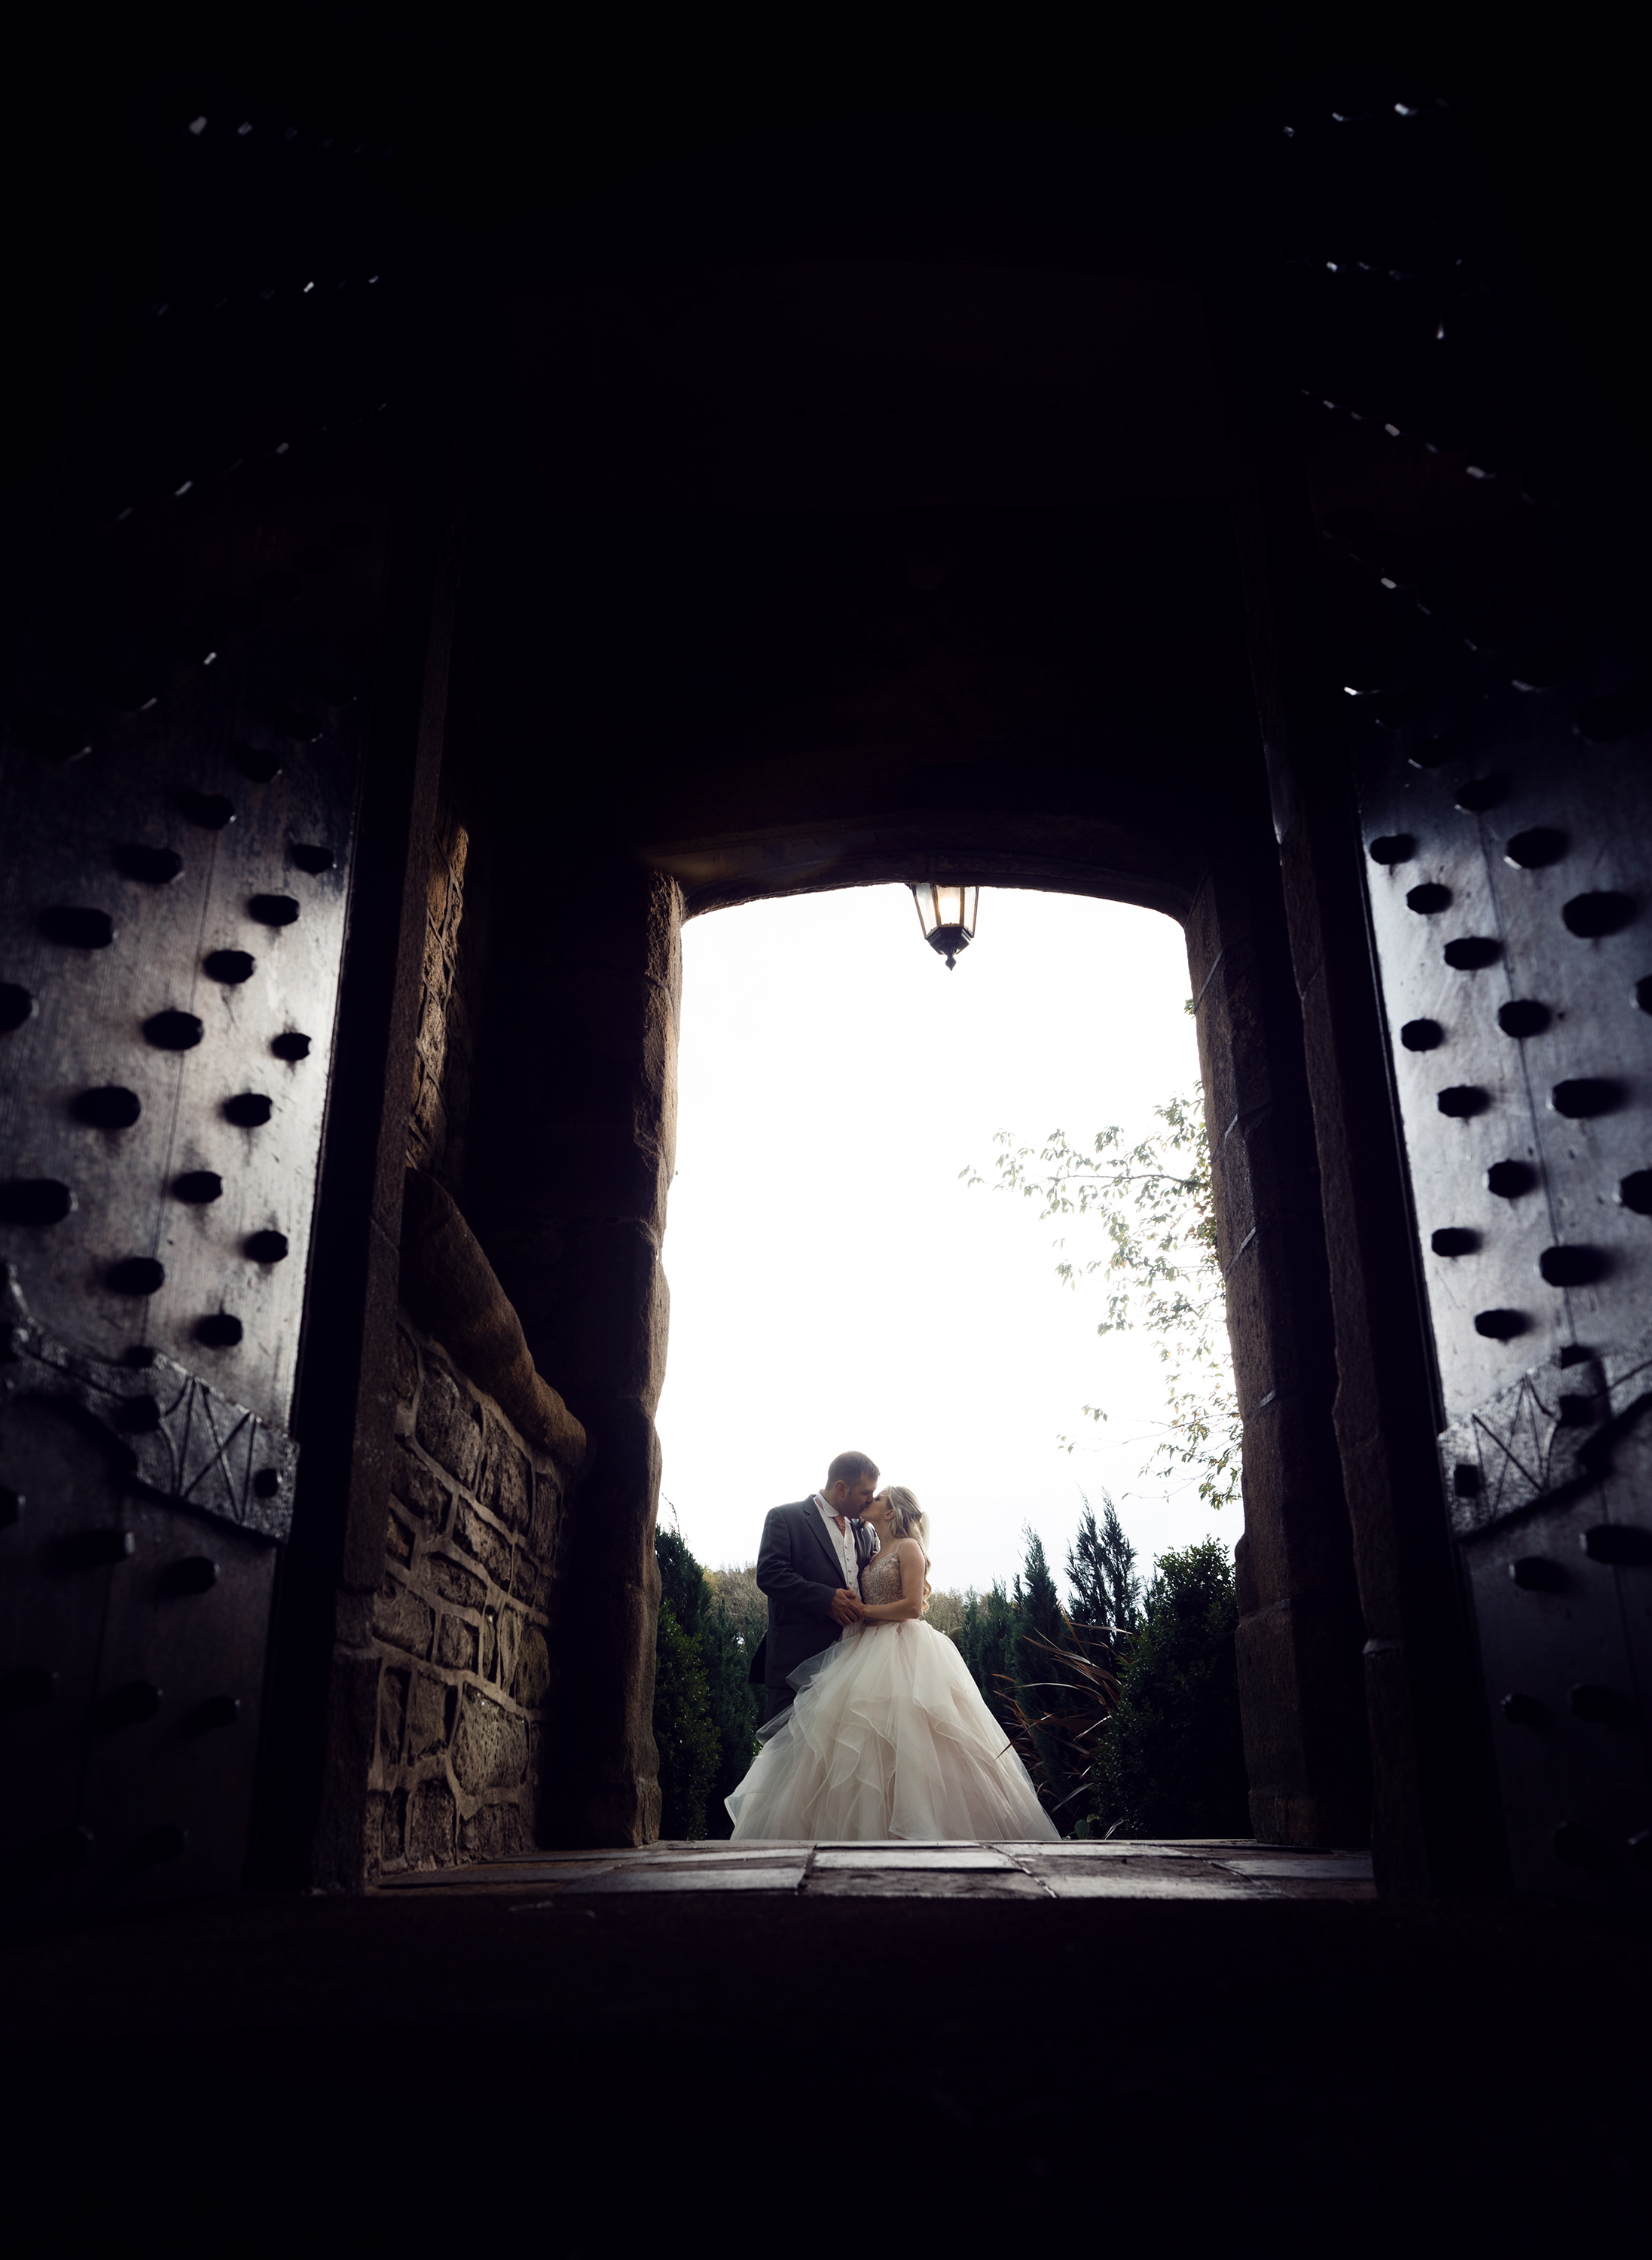 The bride and groom through the doorway